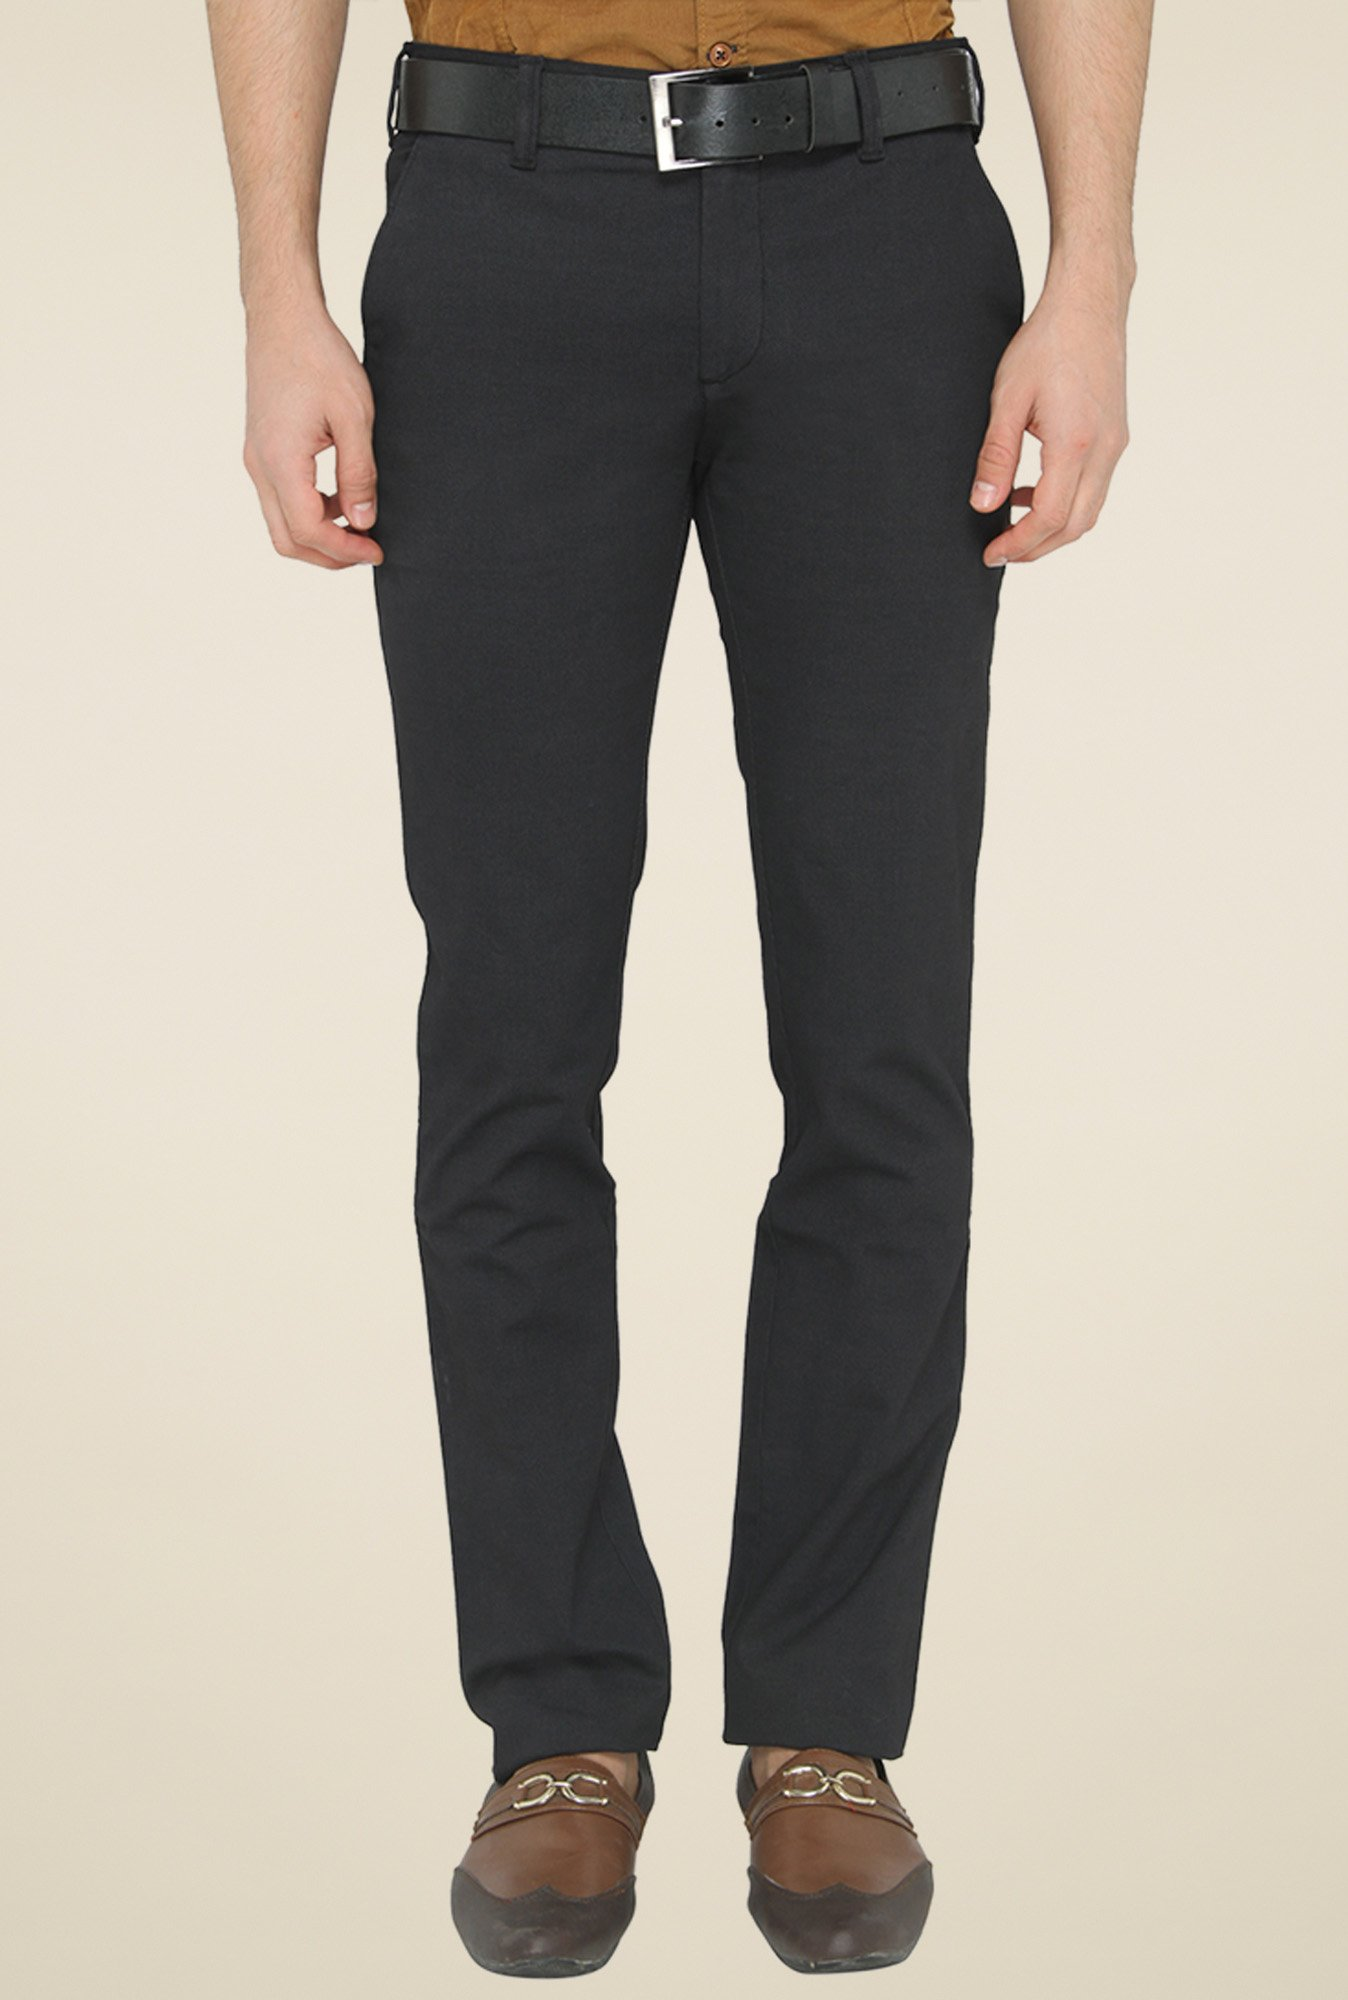 Greenfibre Black Slim Fit Mid Rise Chinos